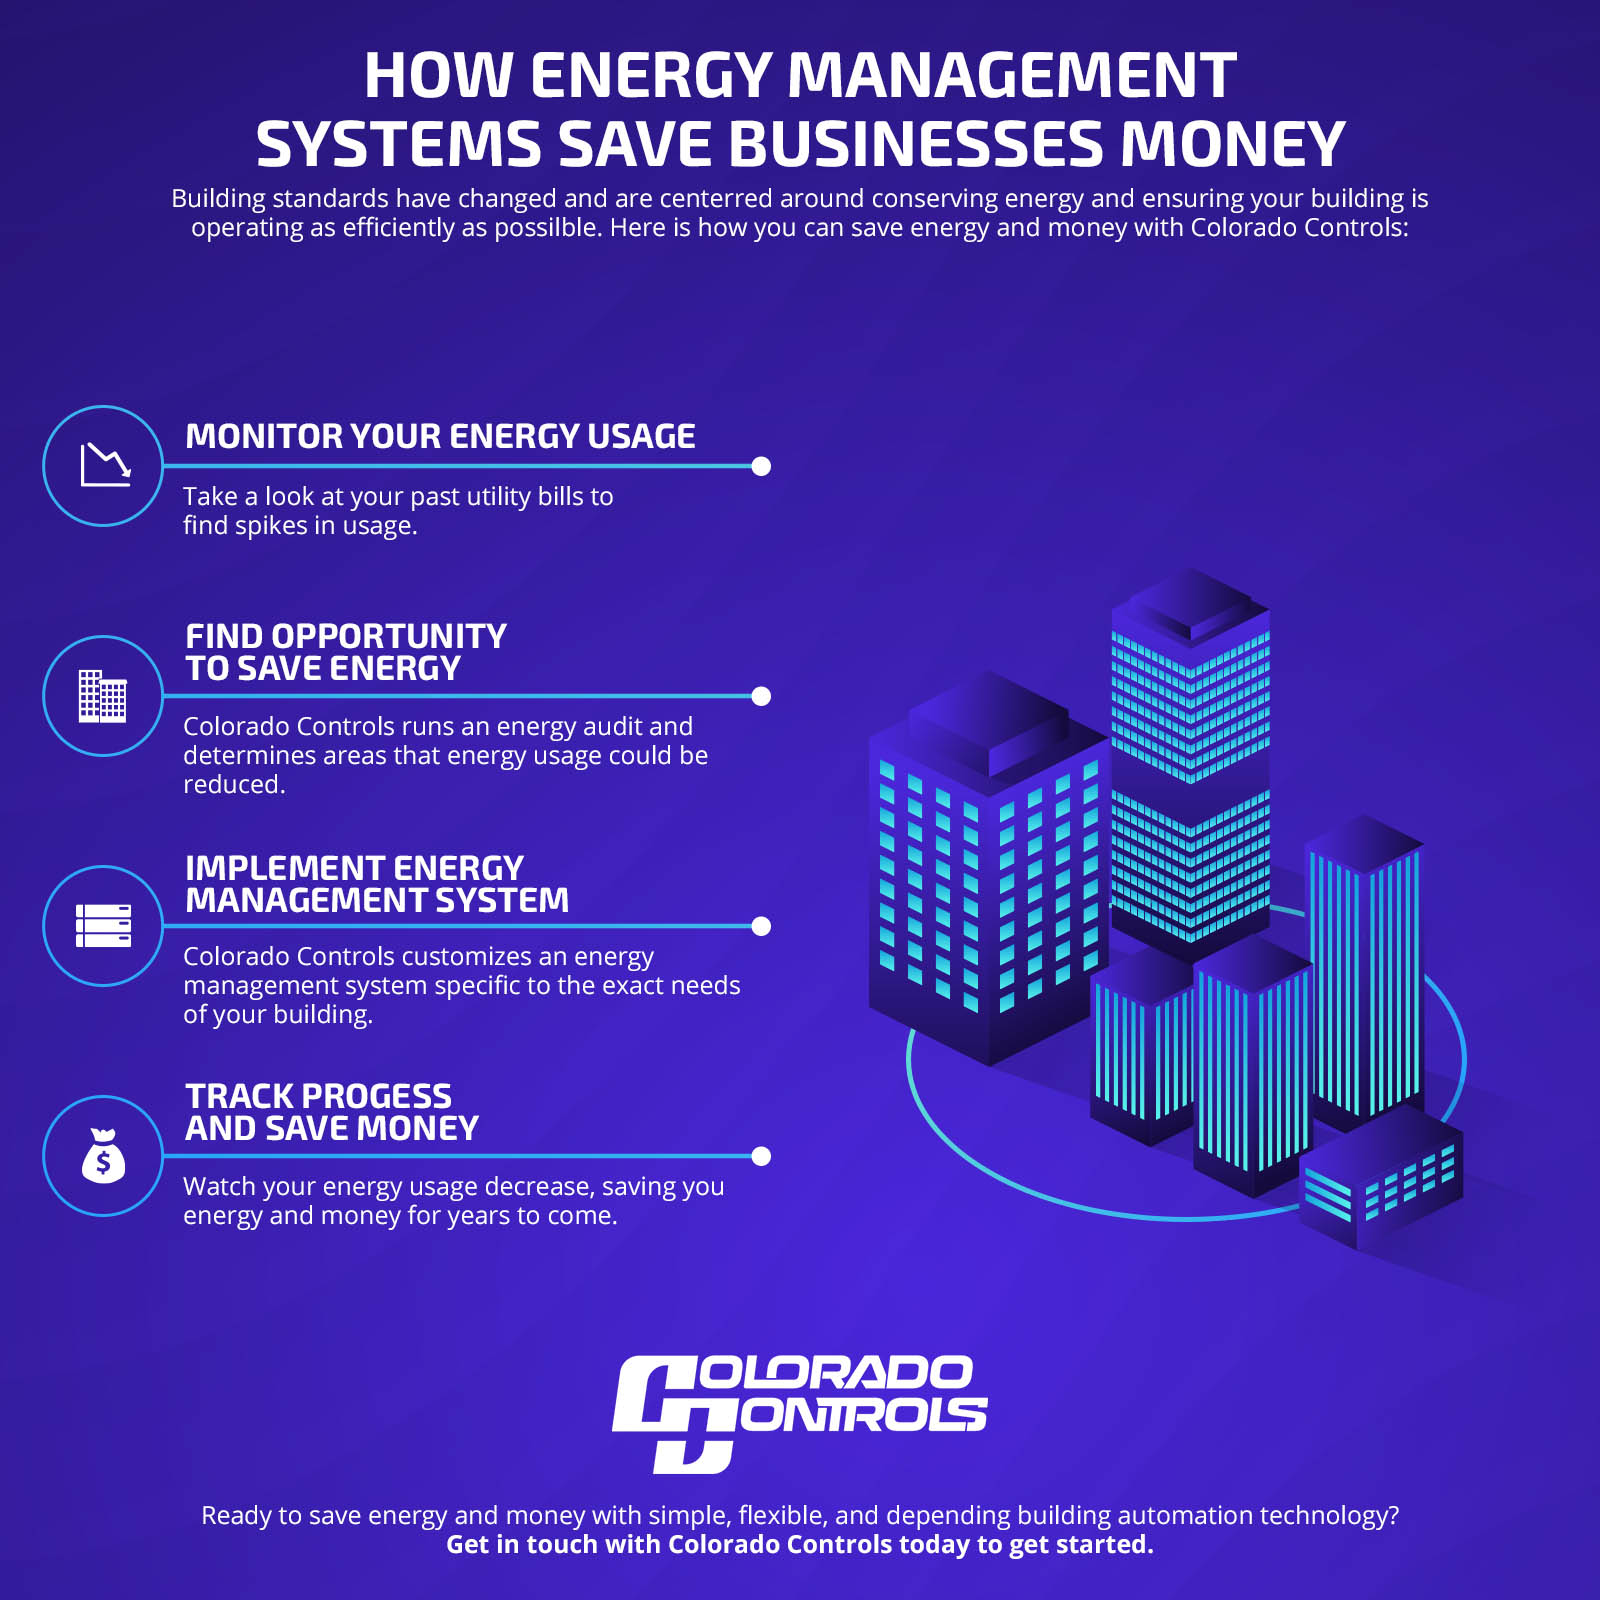 Energy-Management-Systems-Infographic-5e1cdce470016